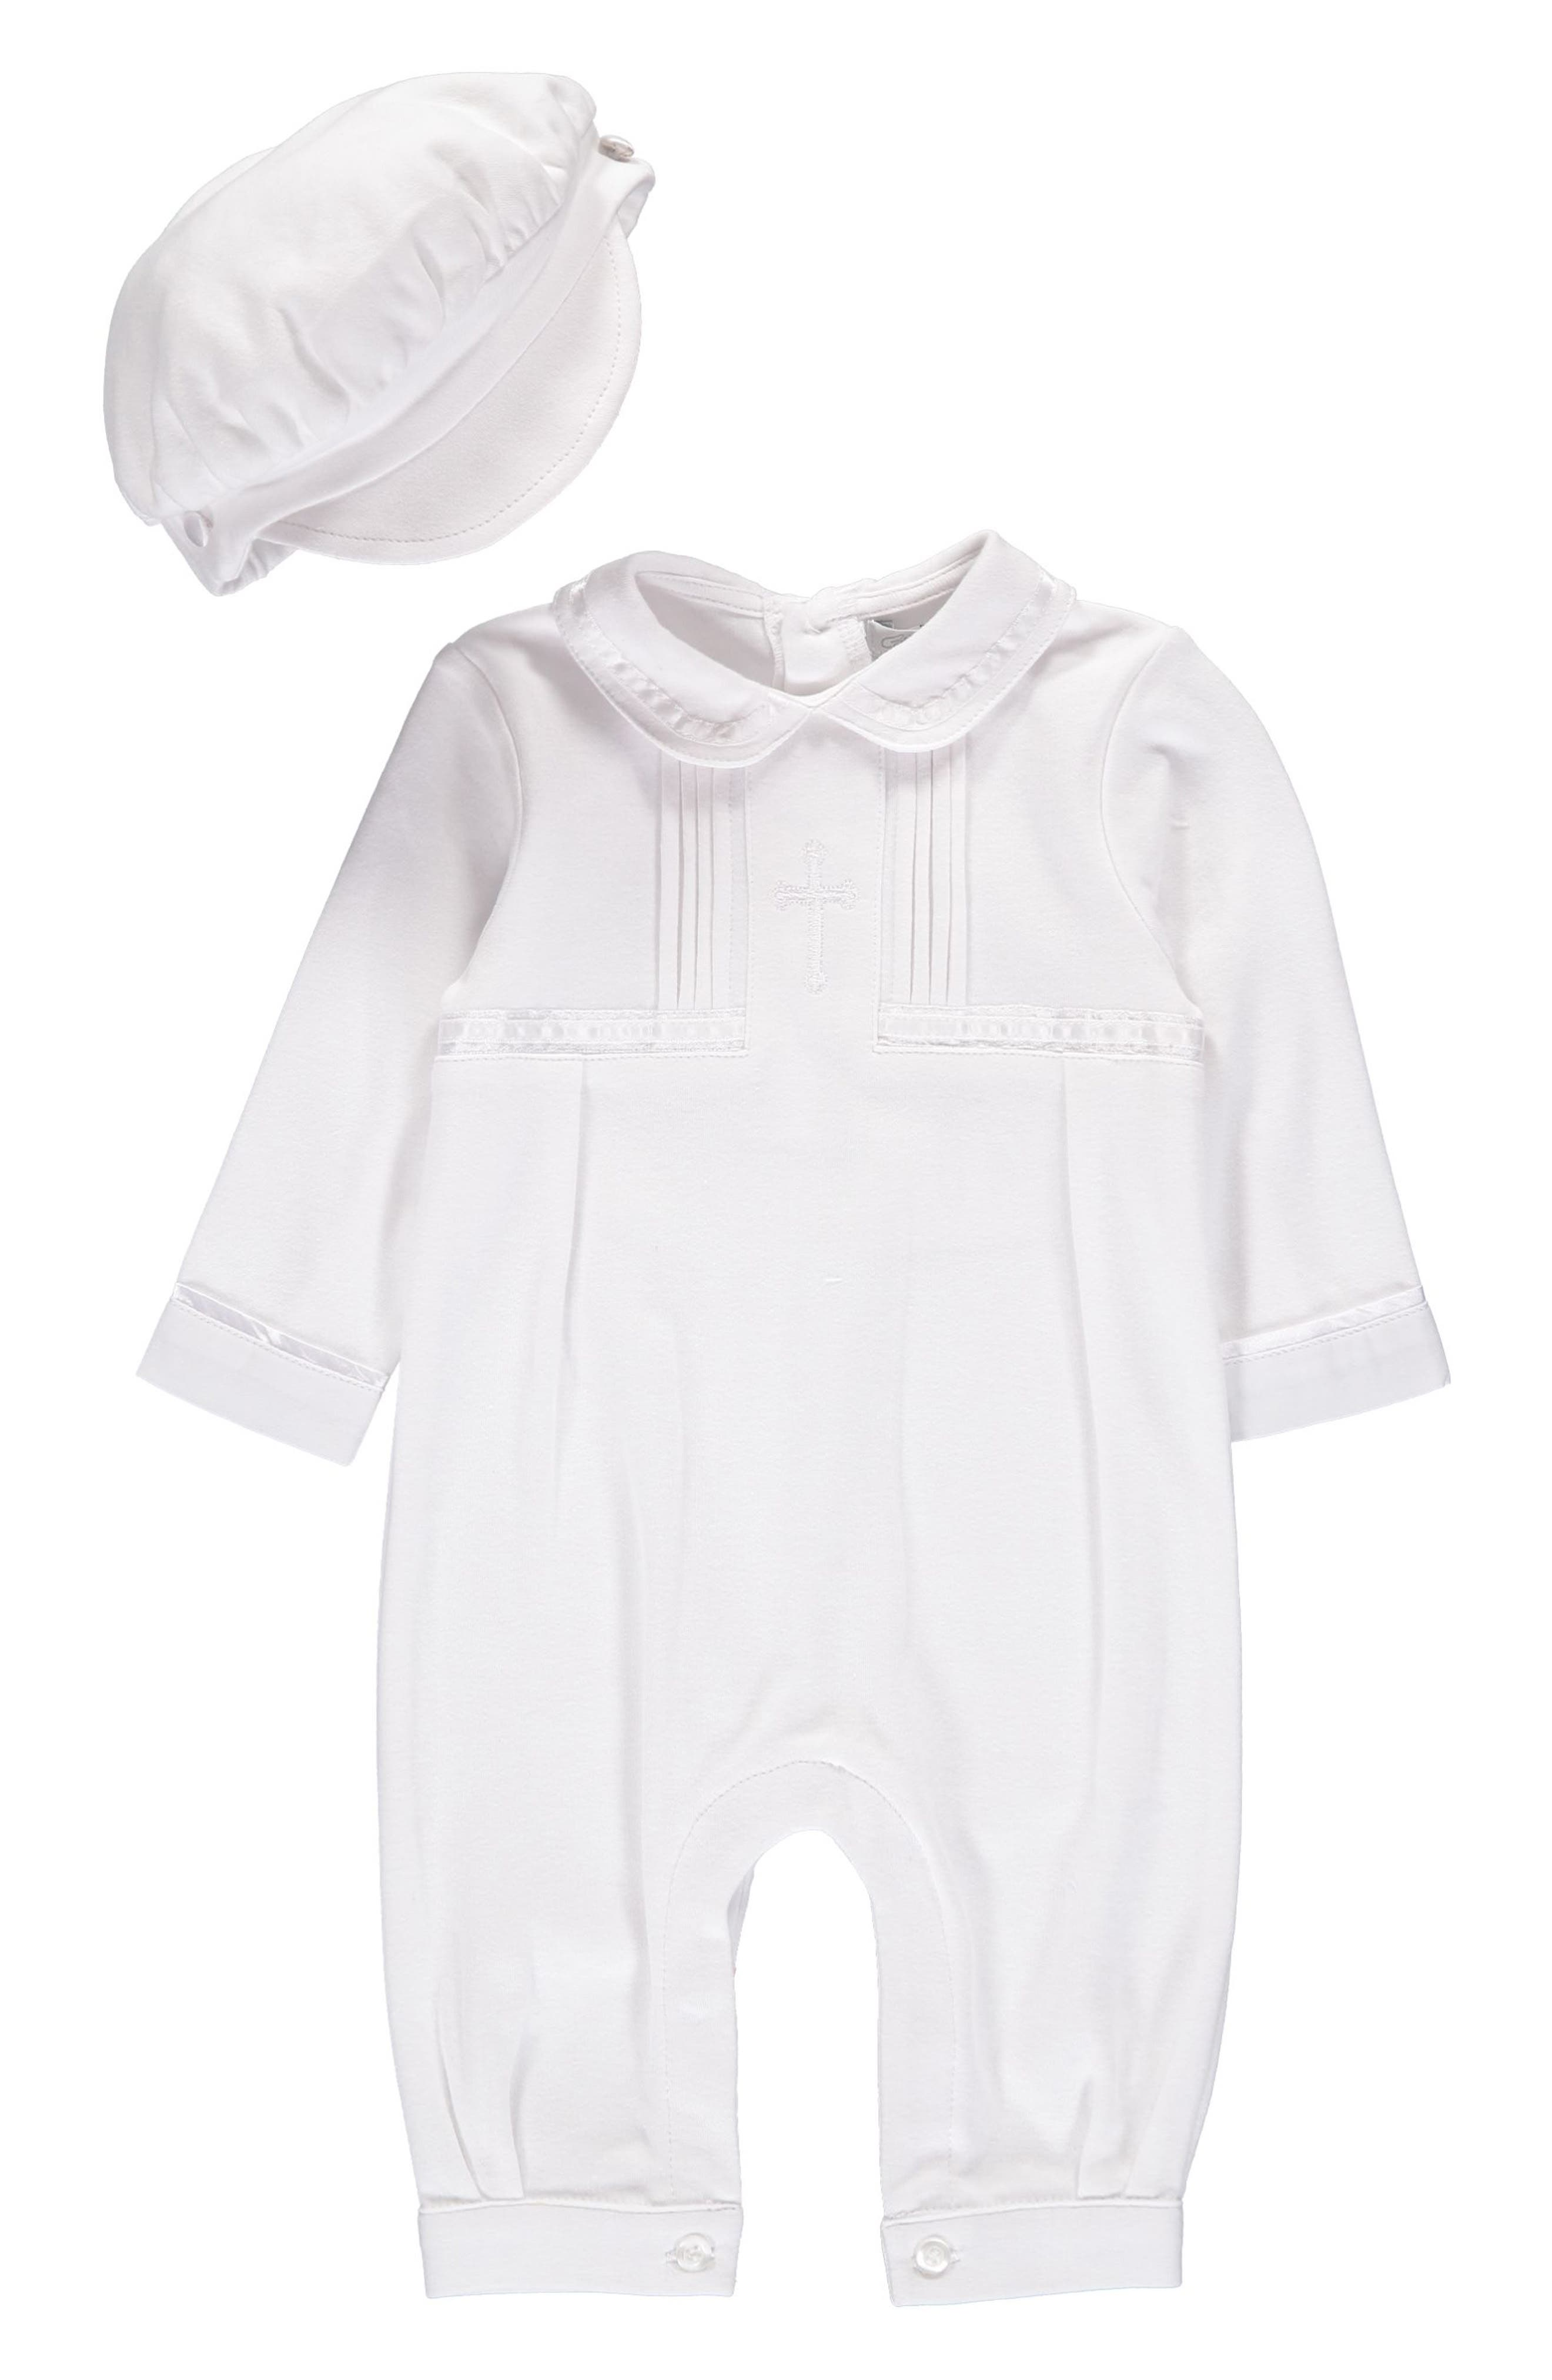 Alternate Image 1 Selected - Carriage Boutique Christening Romper & Cap Set (Baby Boys)